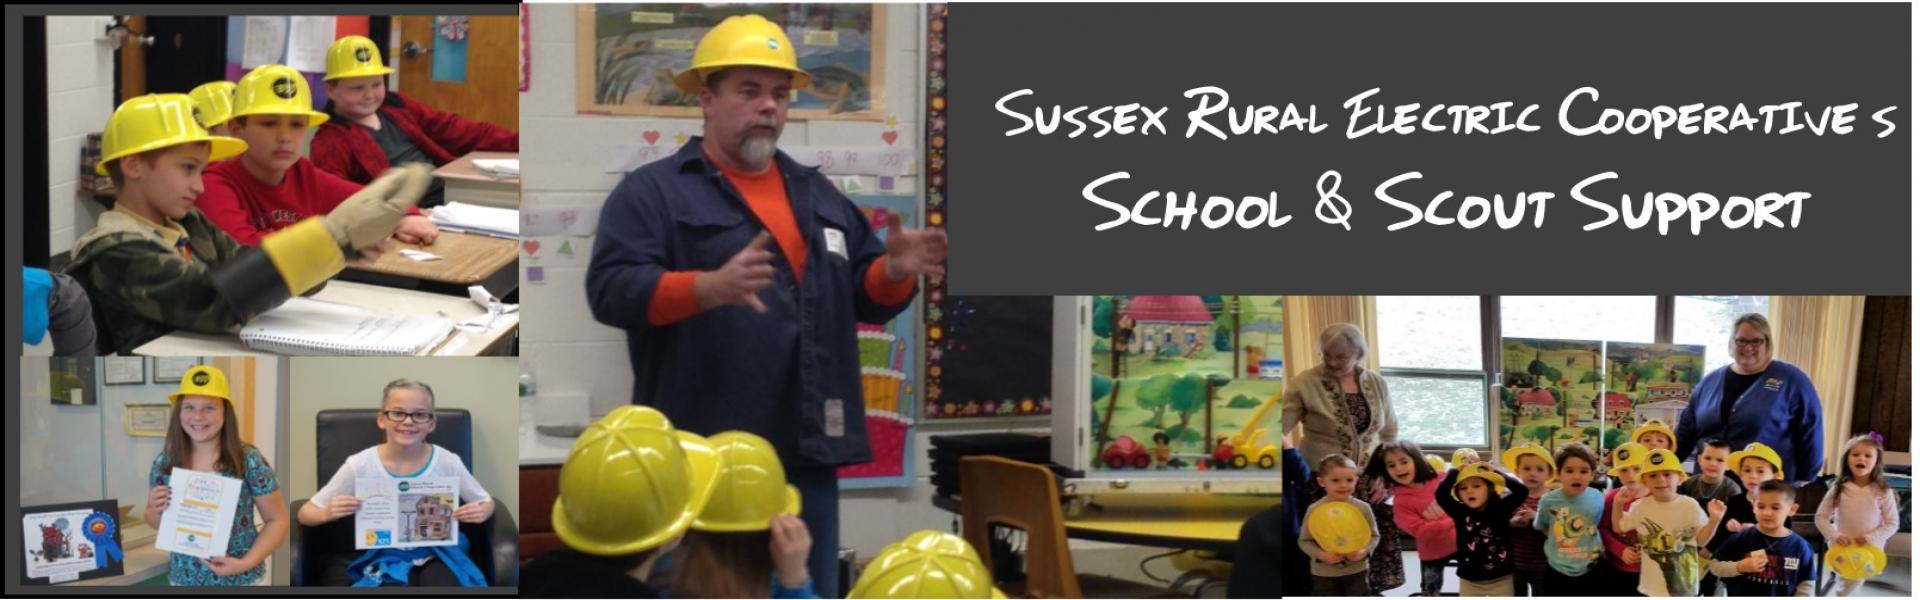 Schools | Sussex Rural Electric Cooperative